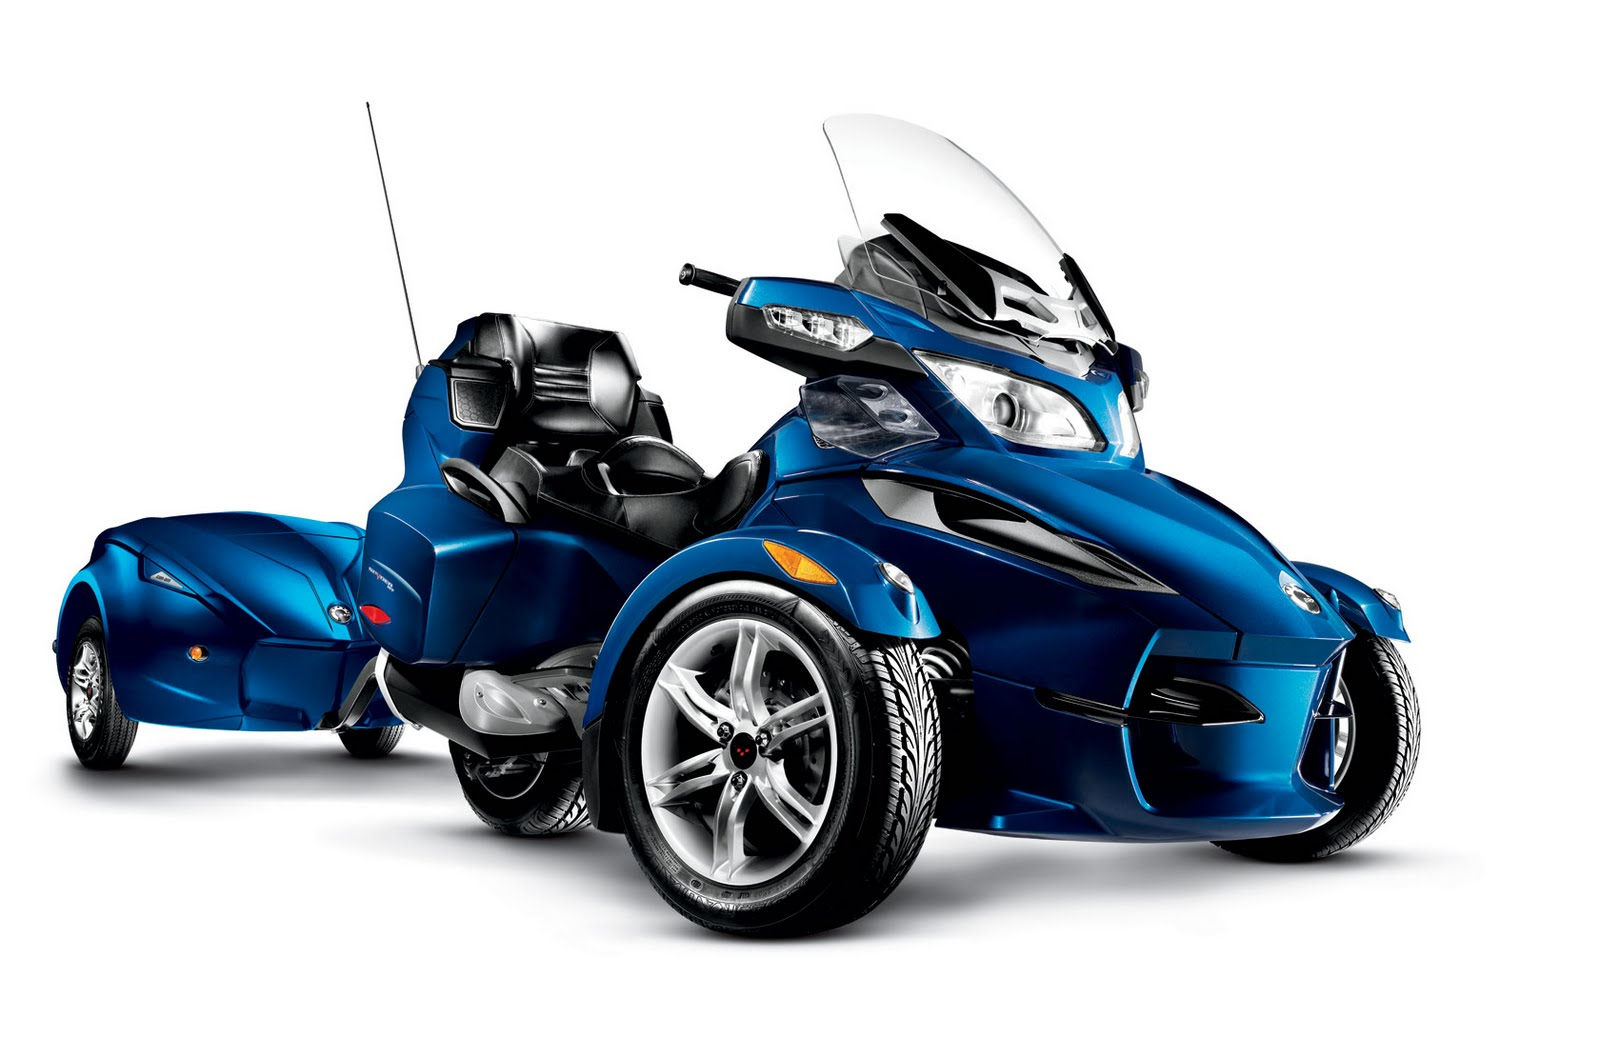 Motorcycle Pictures: Can-Am Spyder RT-622 Trailer 2010